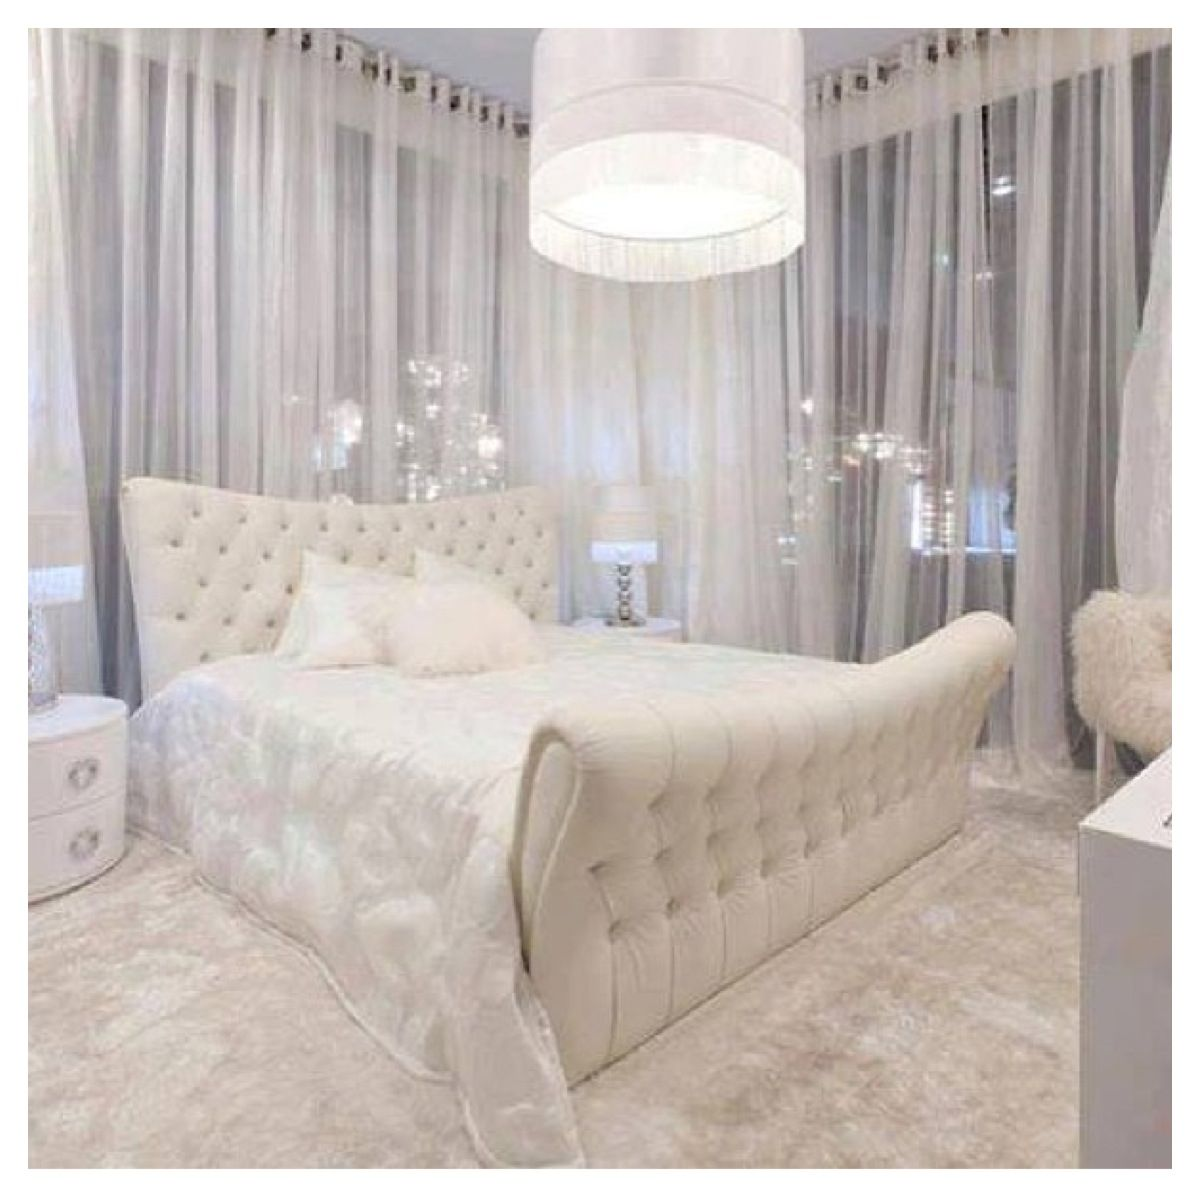 Bedroom Decorations Pinterest Sexy Bedroom Home Decor Pinterest